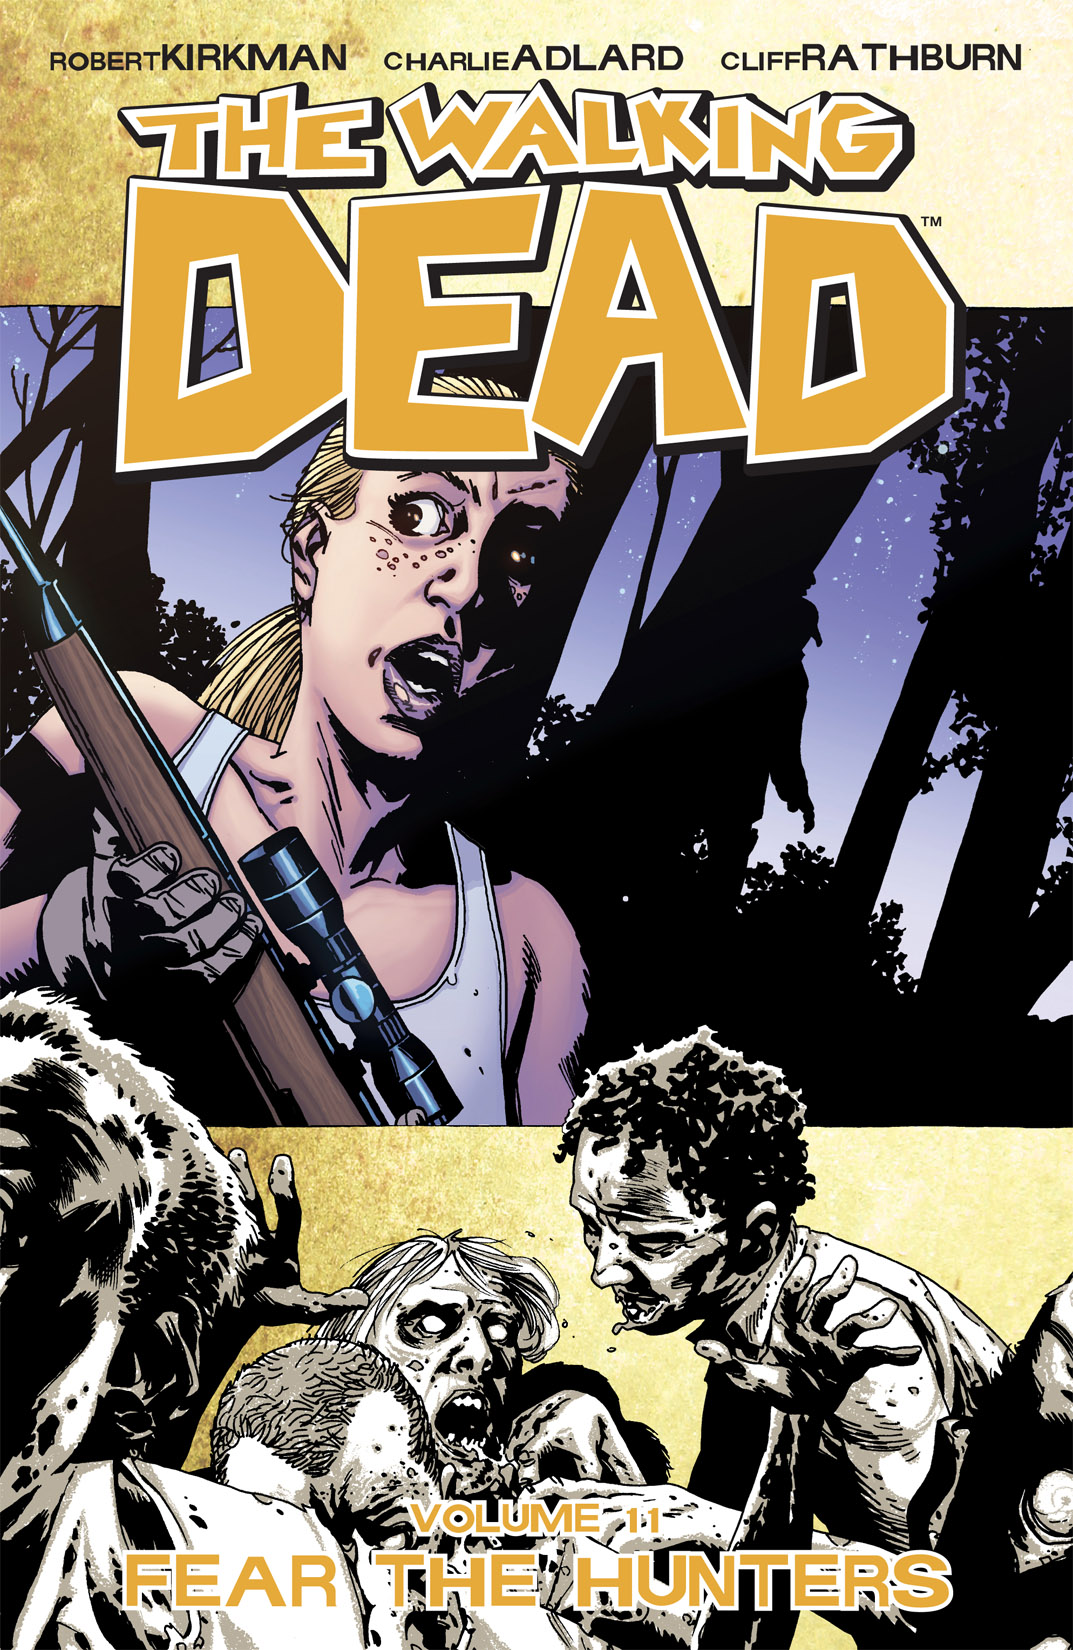 the walking dead vol 29 lines we cross